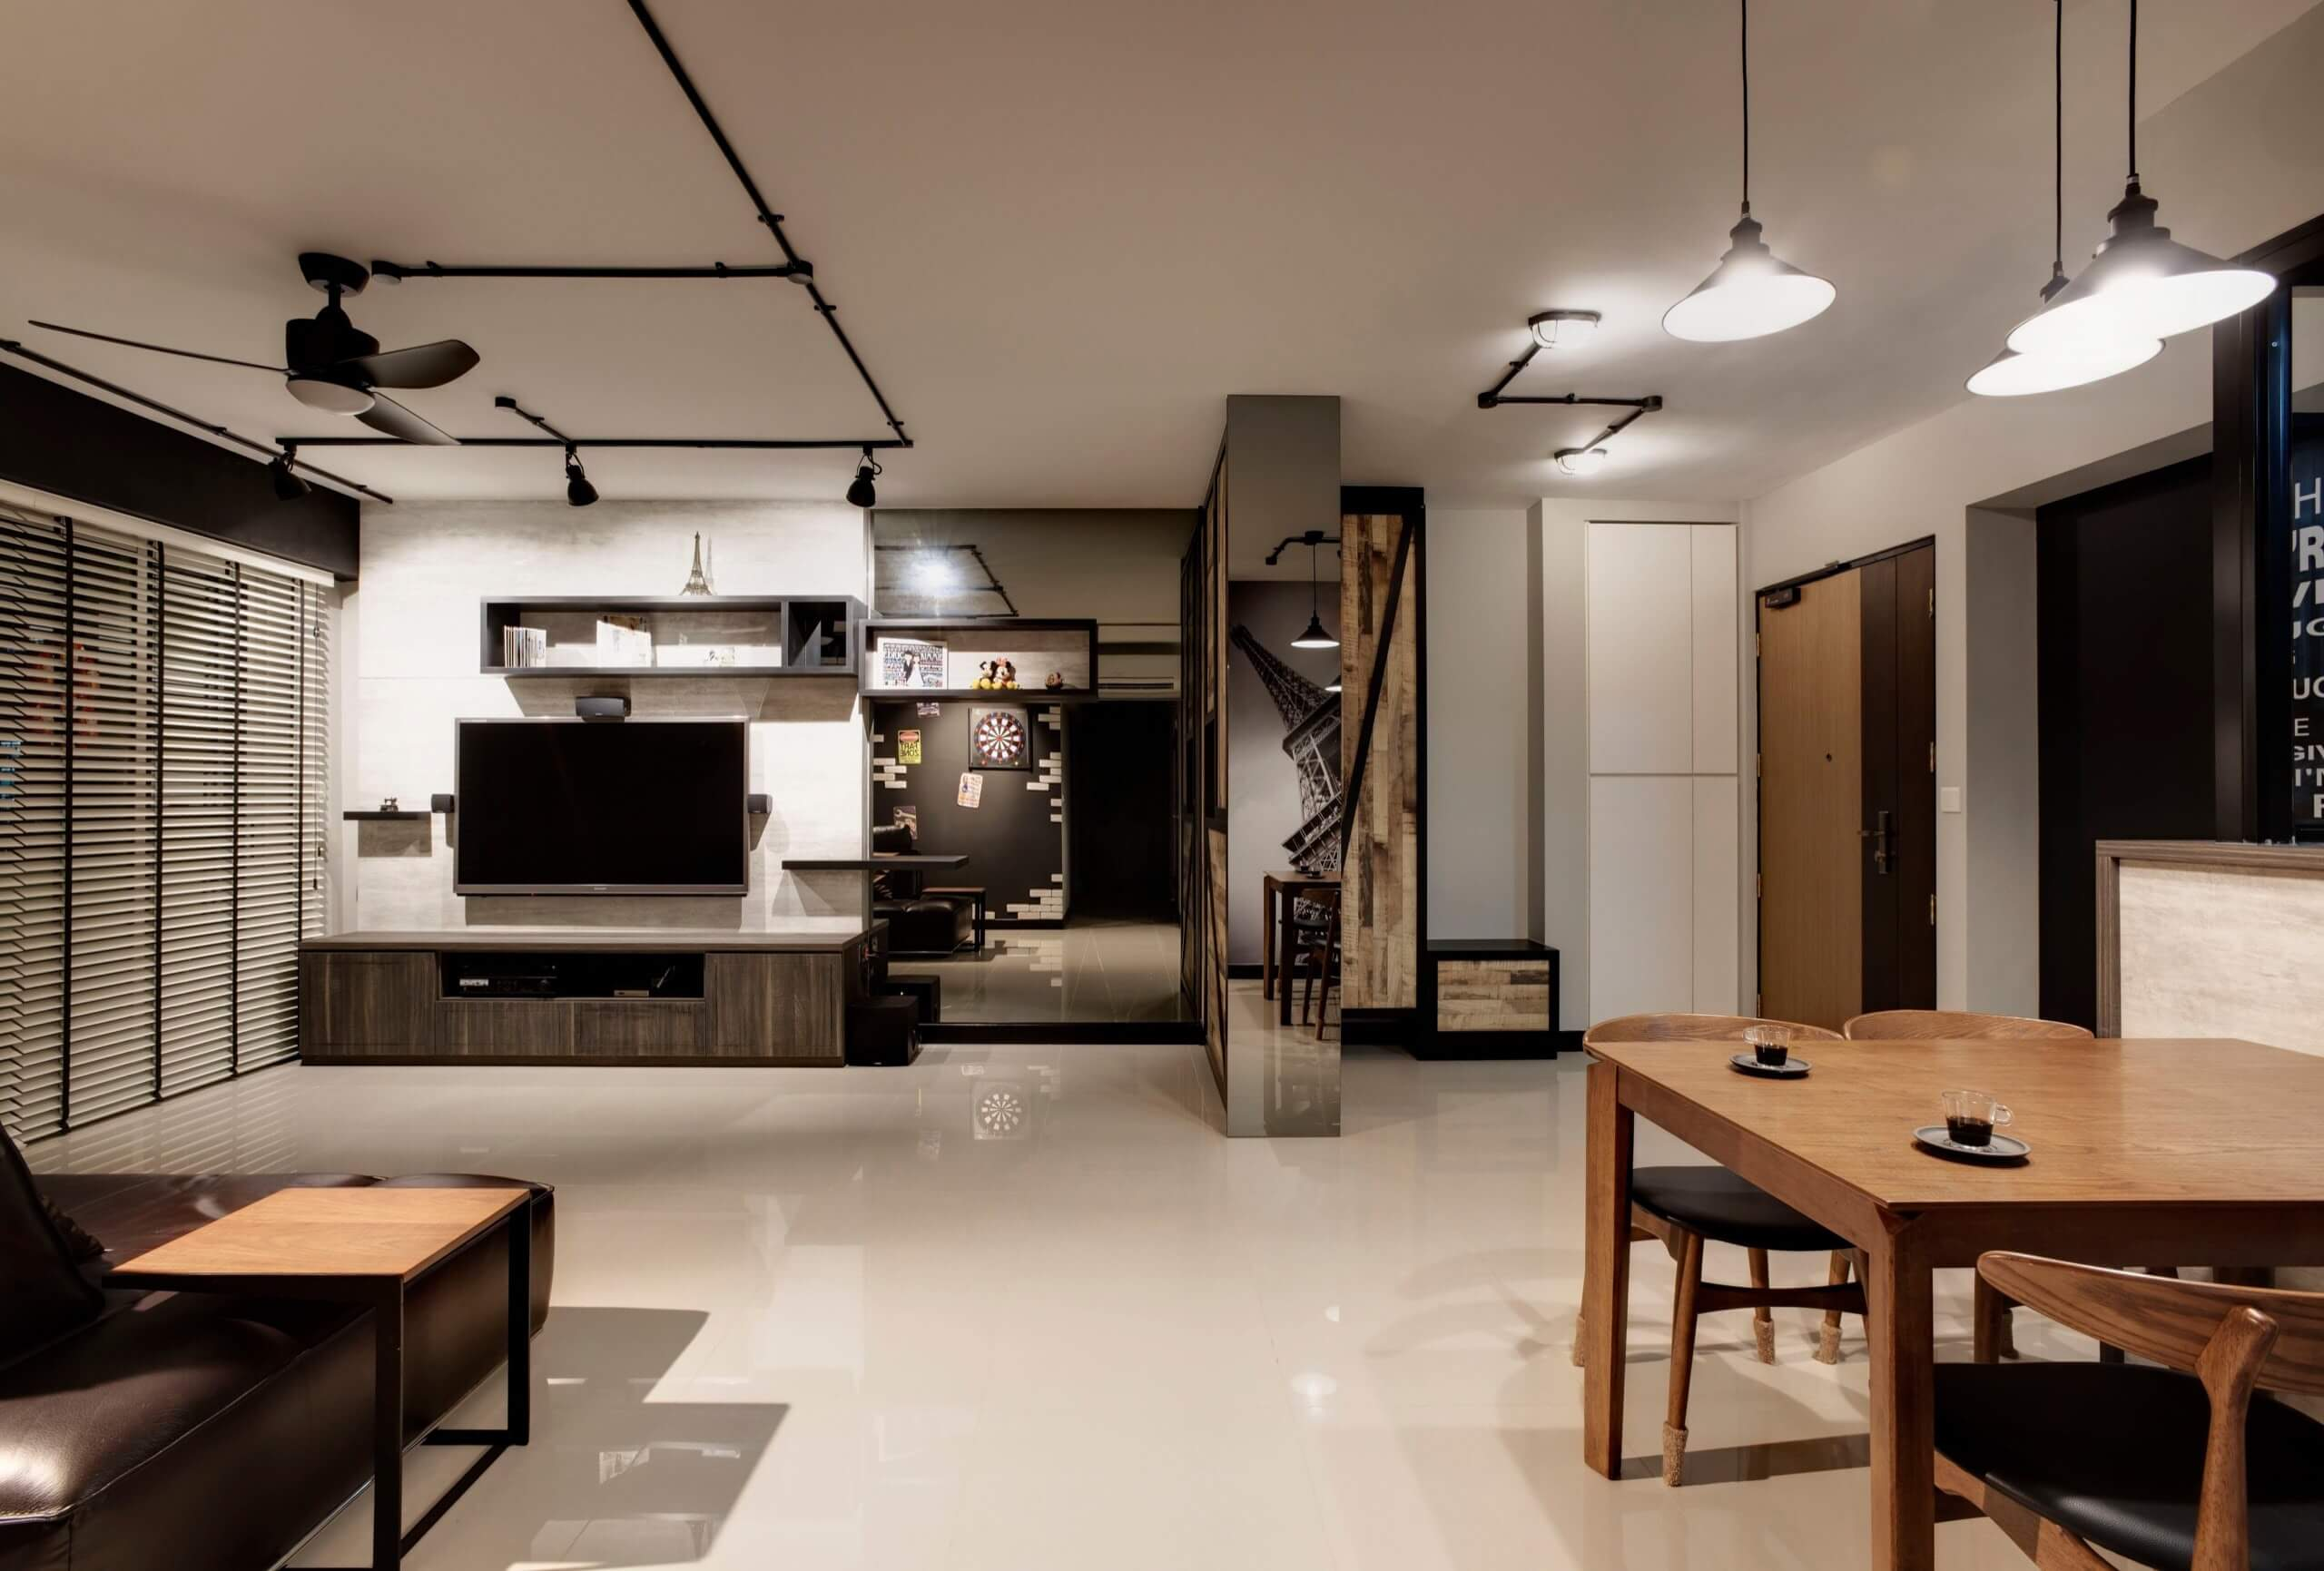 HDB-interior-design-project-warehouse-chic-industrial-design-06